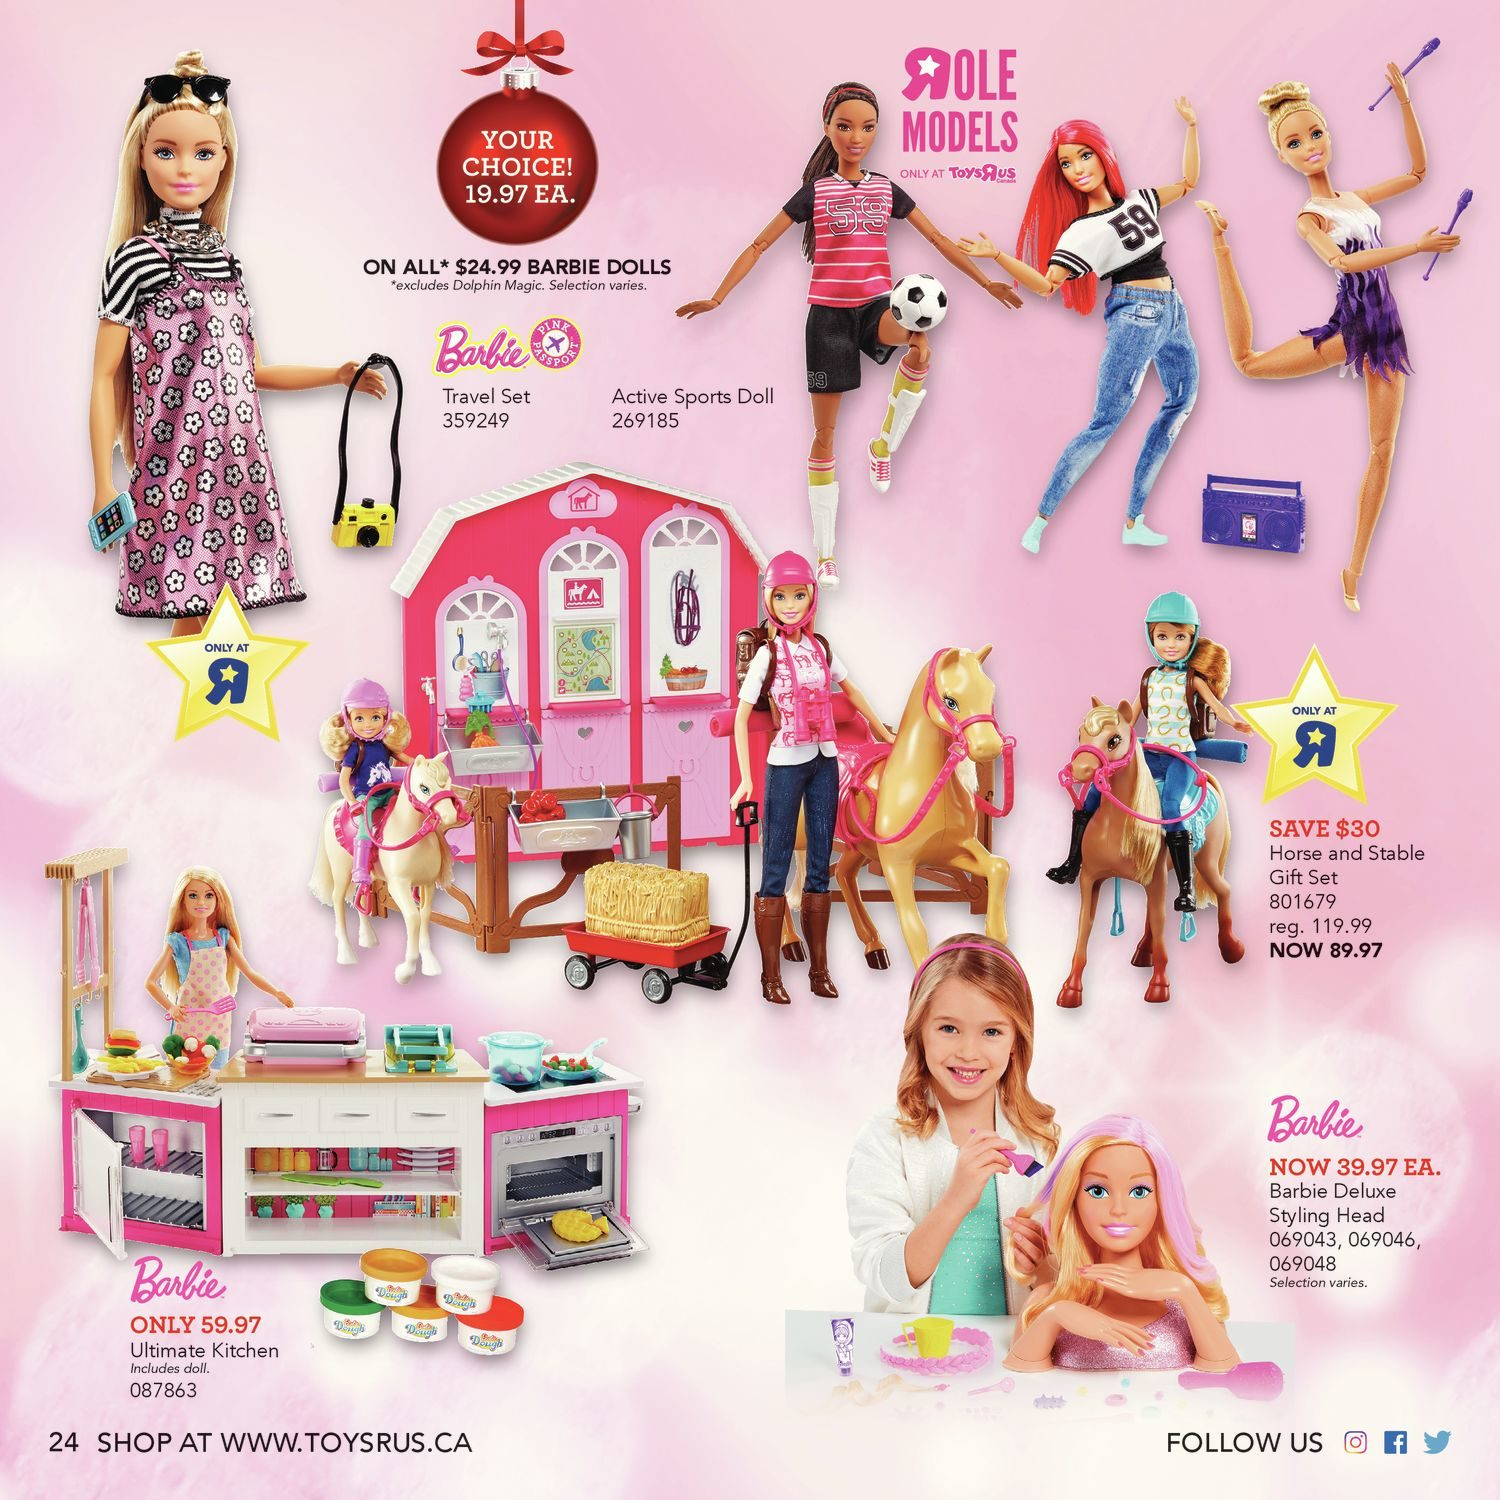 a837364d0b Toys R Us Weekly Flyer - Ultimate Toy Guide 2018 - Nov 2 – 15 -  RedFlagDeals.com